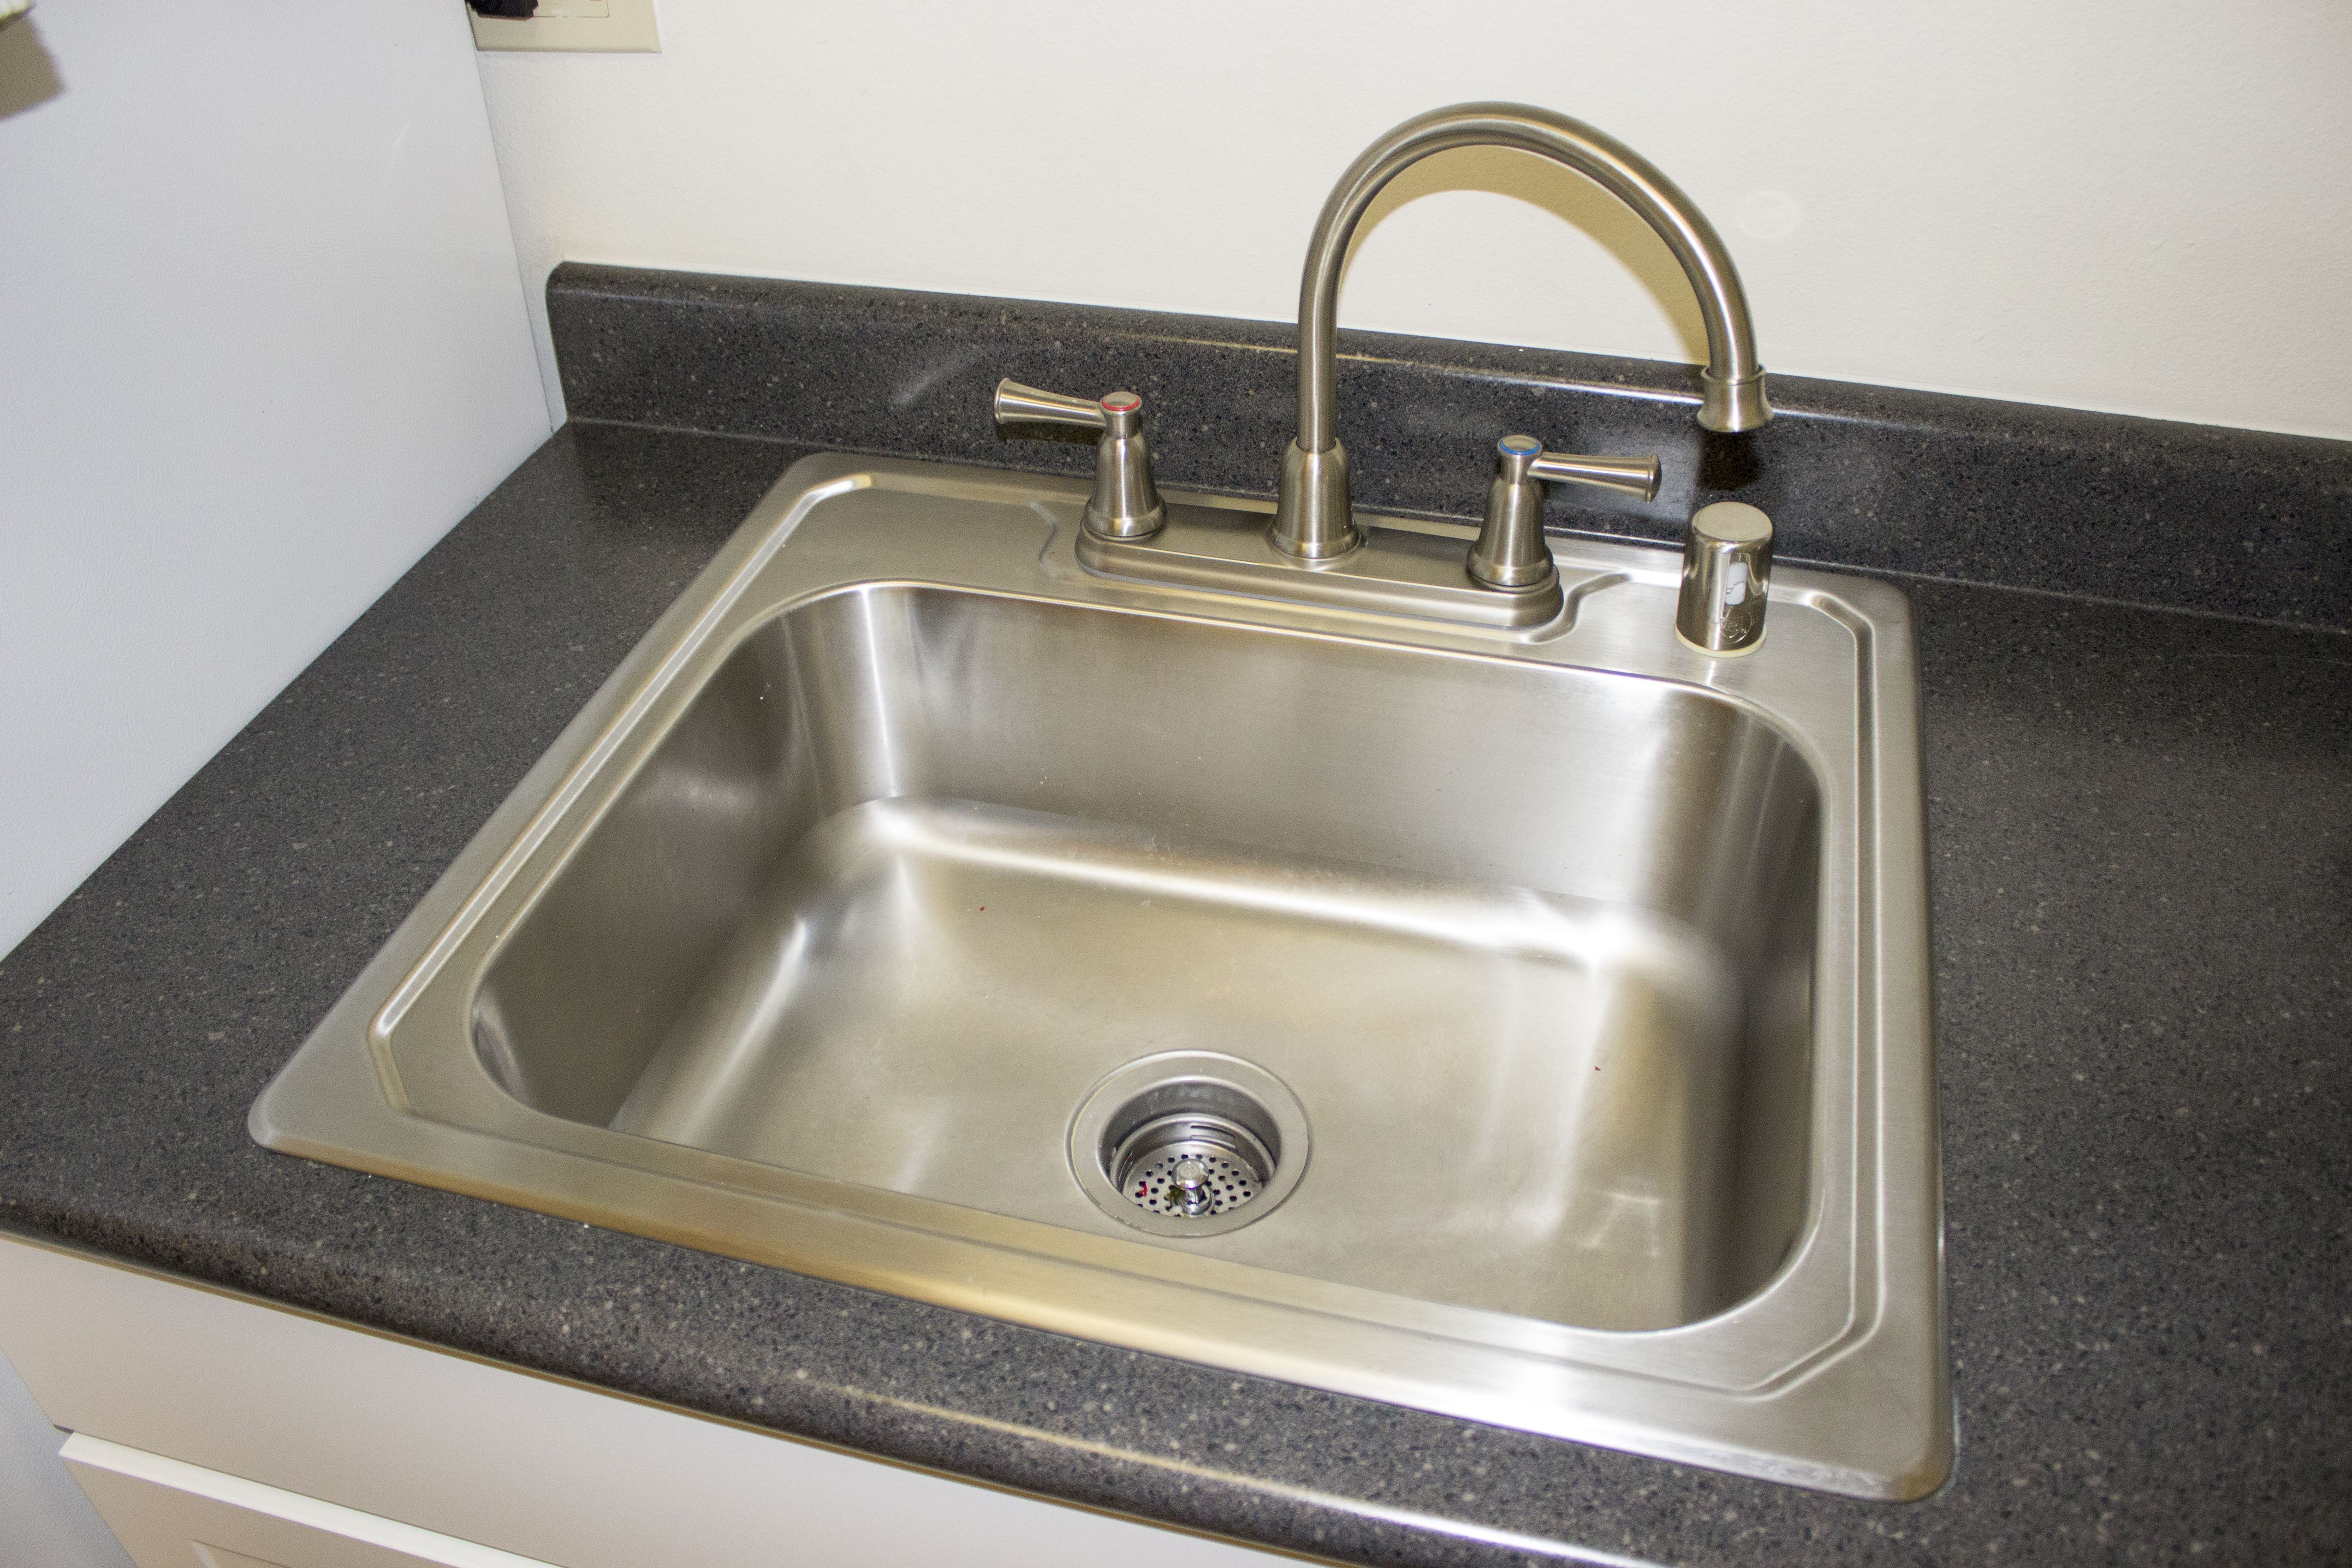 how to paint a kitchen sink hunker kitchen sink refinish kitchen sink diy kitchen sink remodel